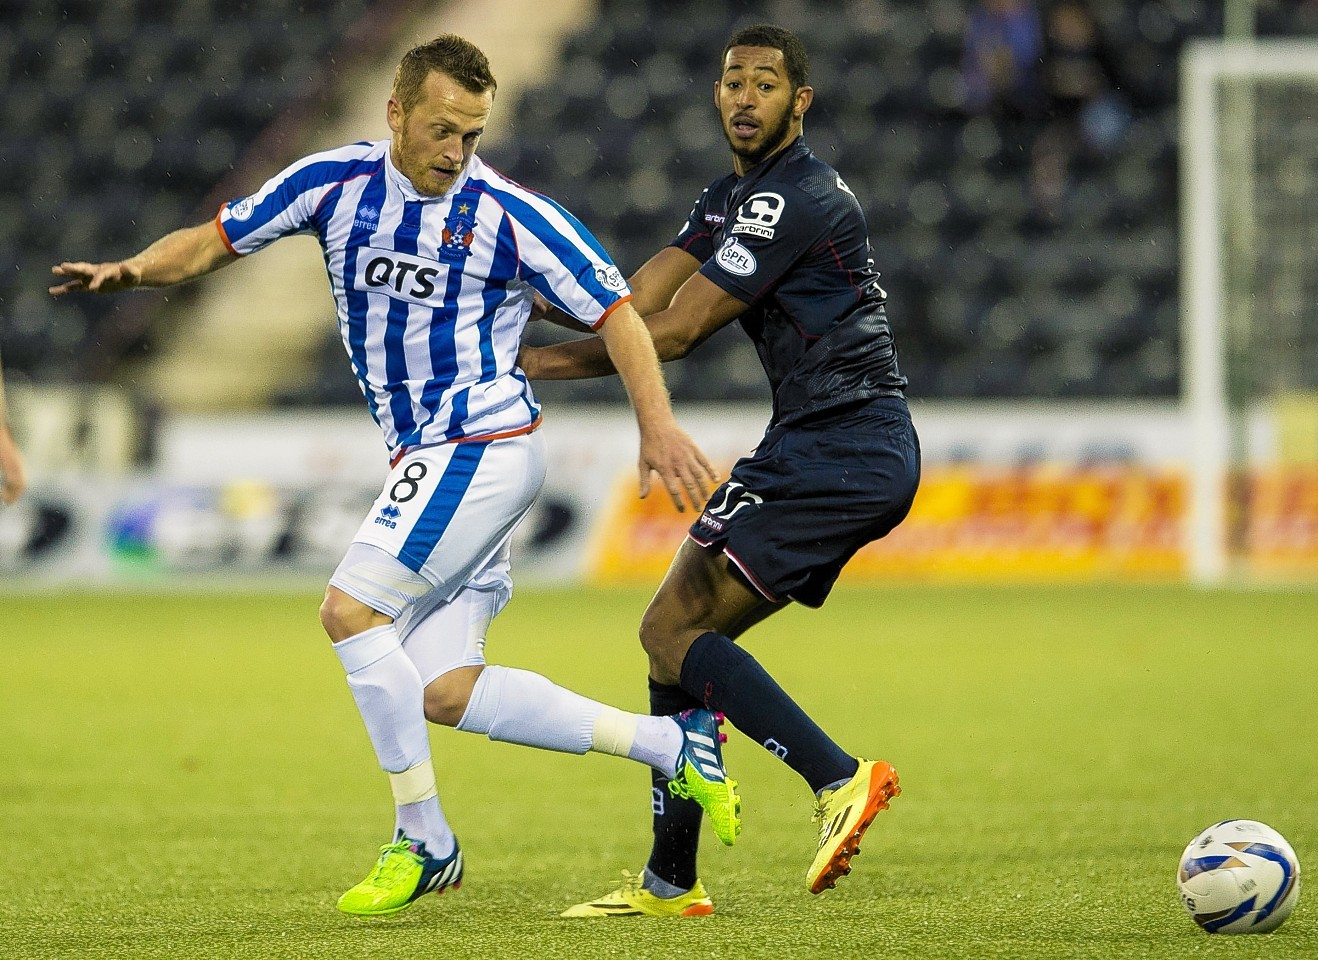 Reckord in action against Kilmarnock